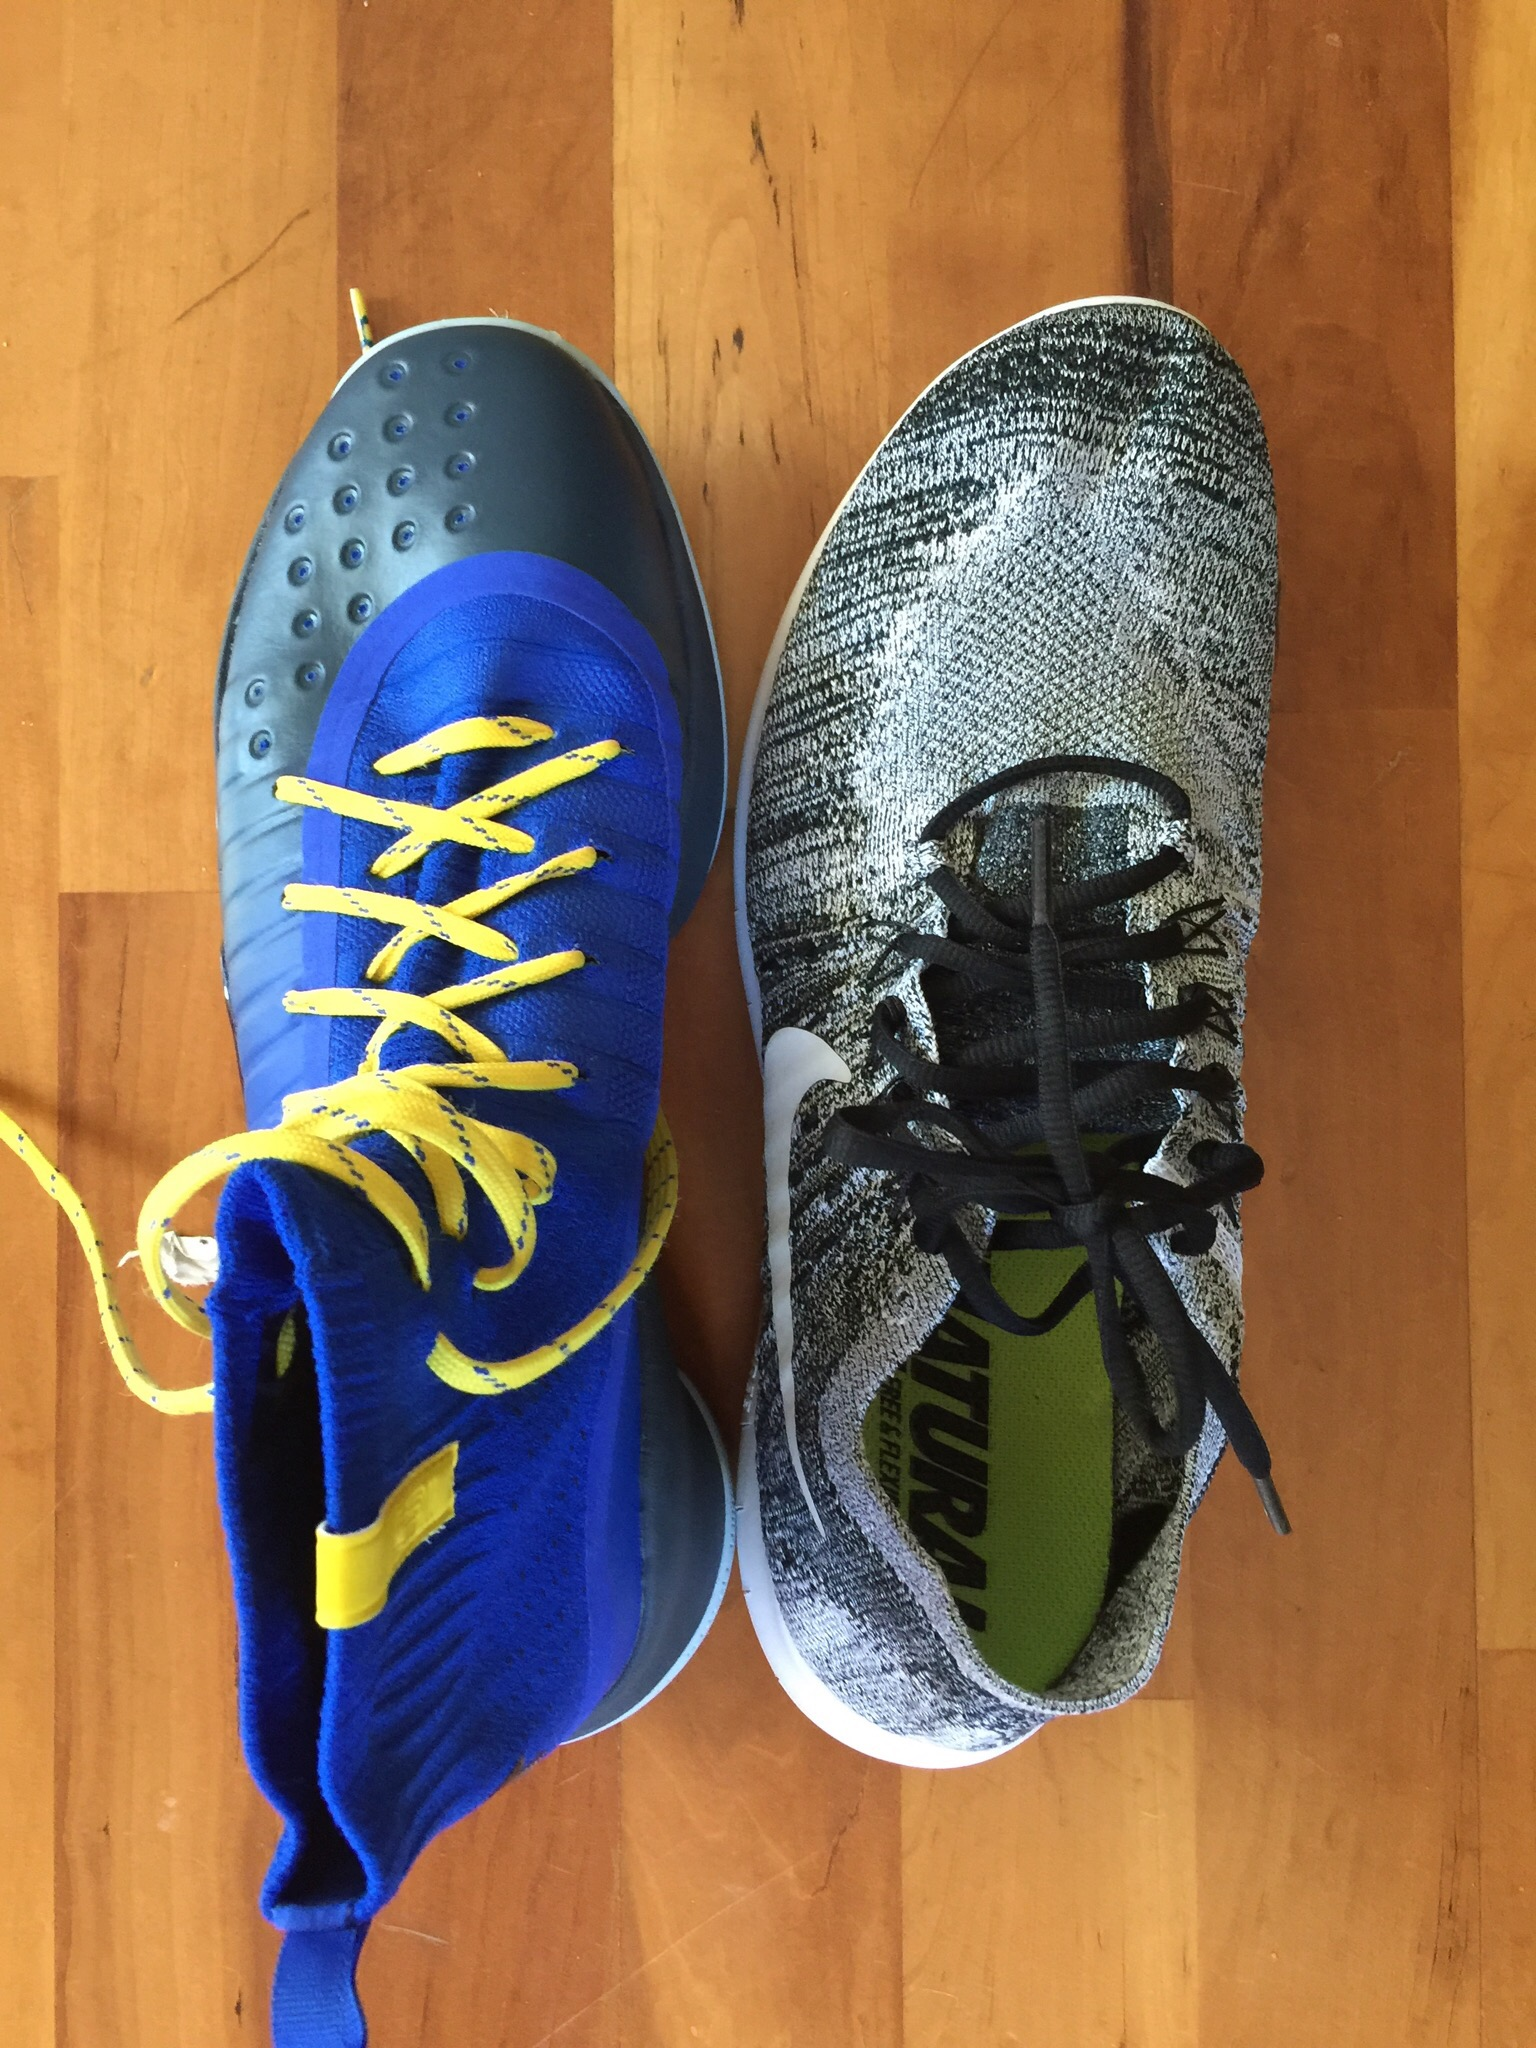 6edcb40bd01 Under Armour Curry 4 Performance Analysis and Review